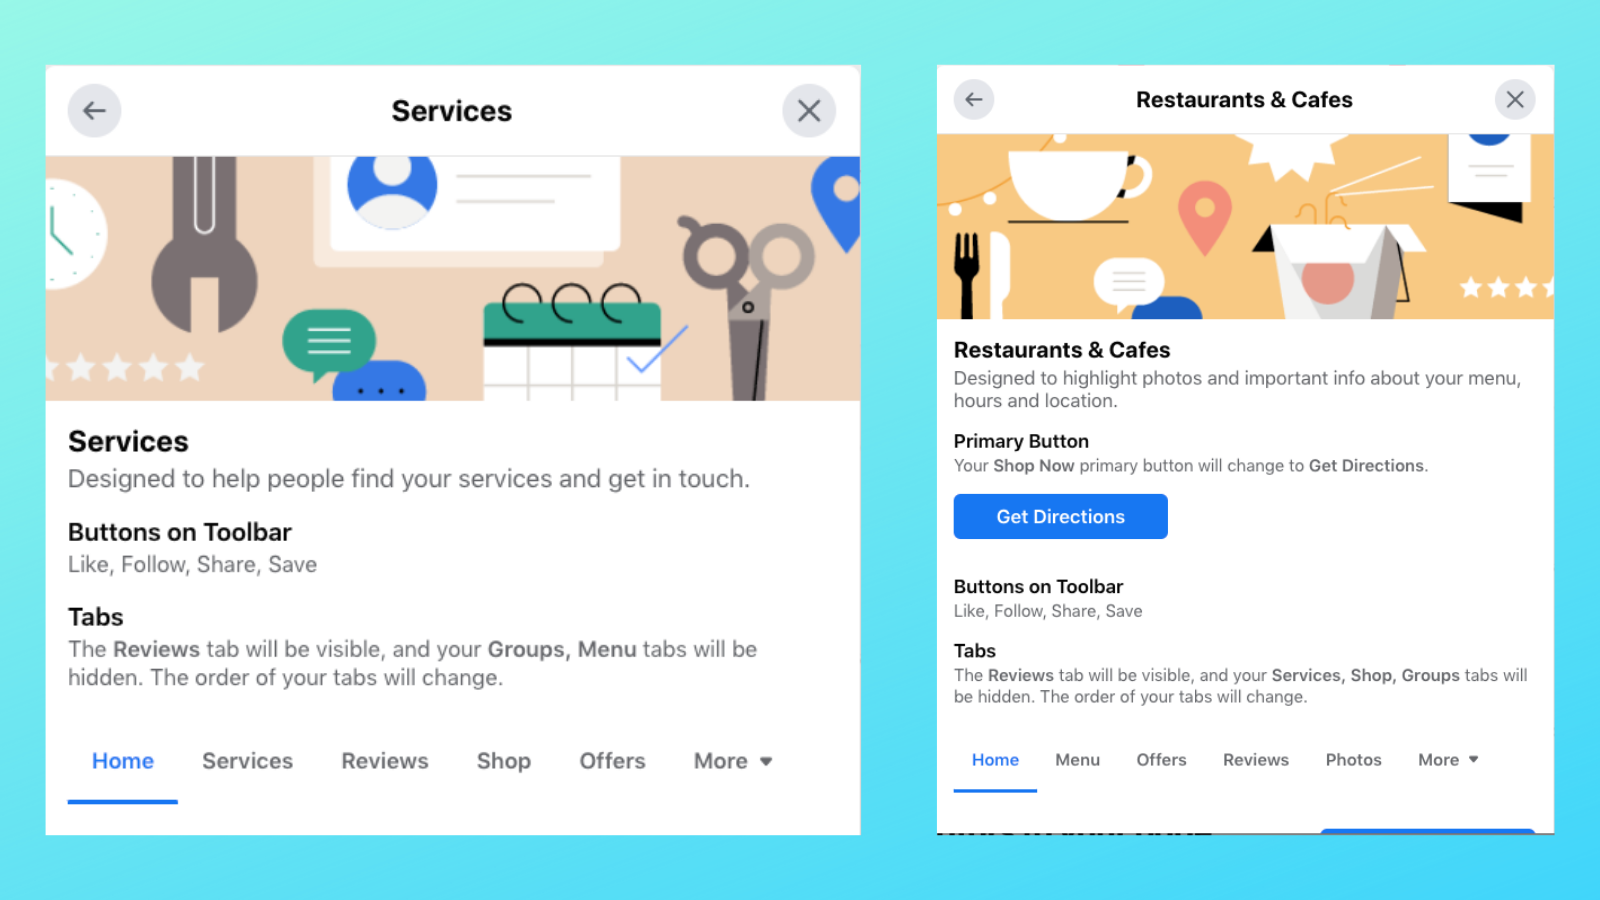 Examples of Facebook Business Page templates: Services and Restaurants & Cafes.